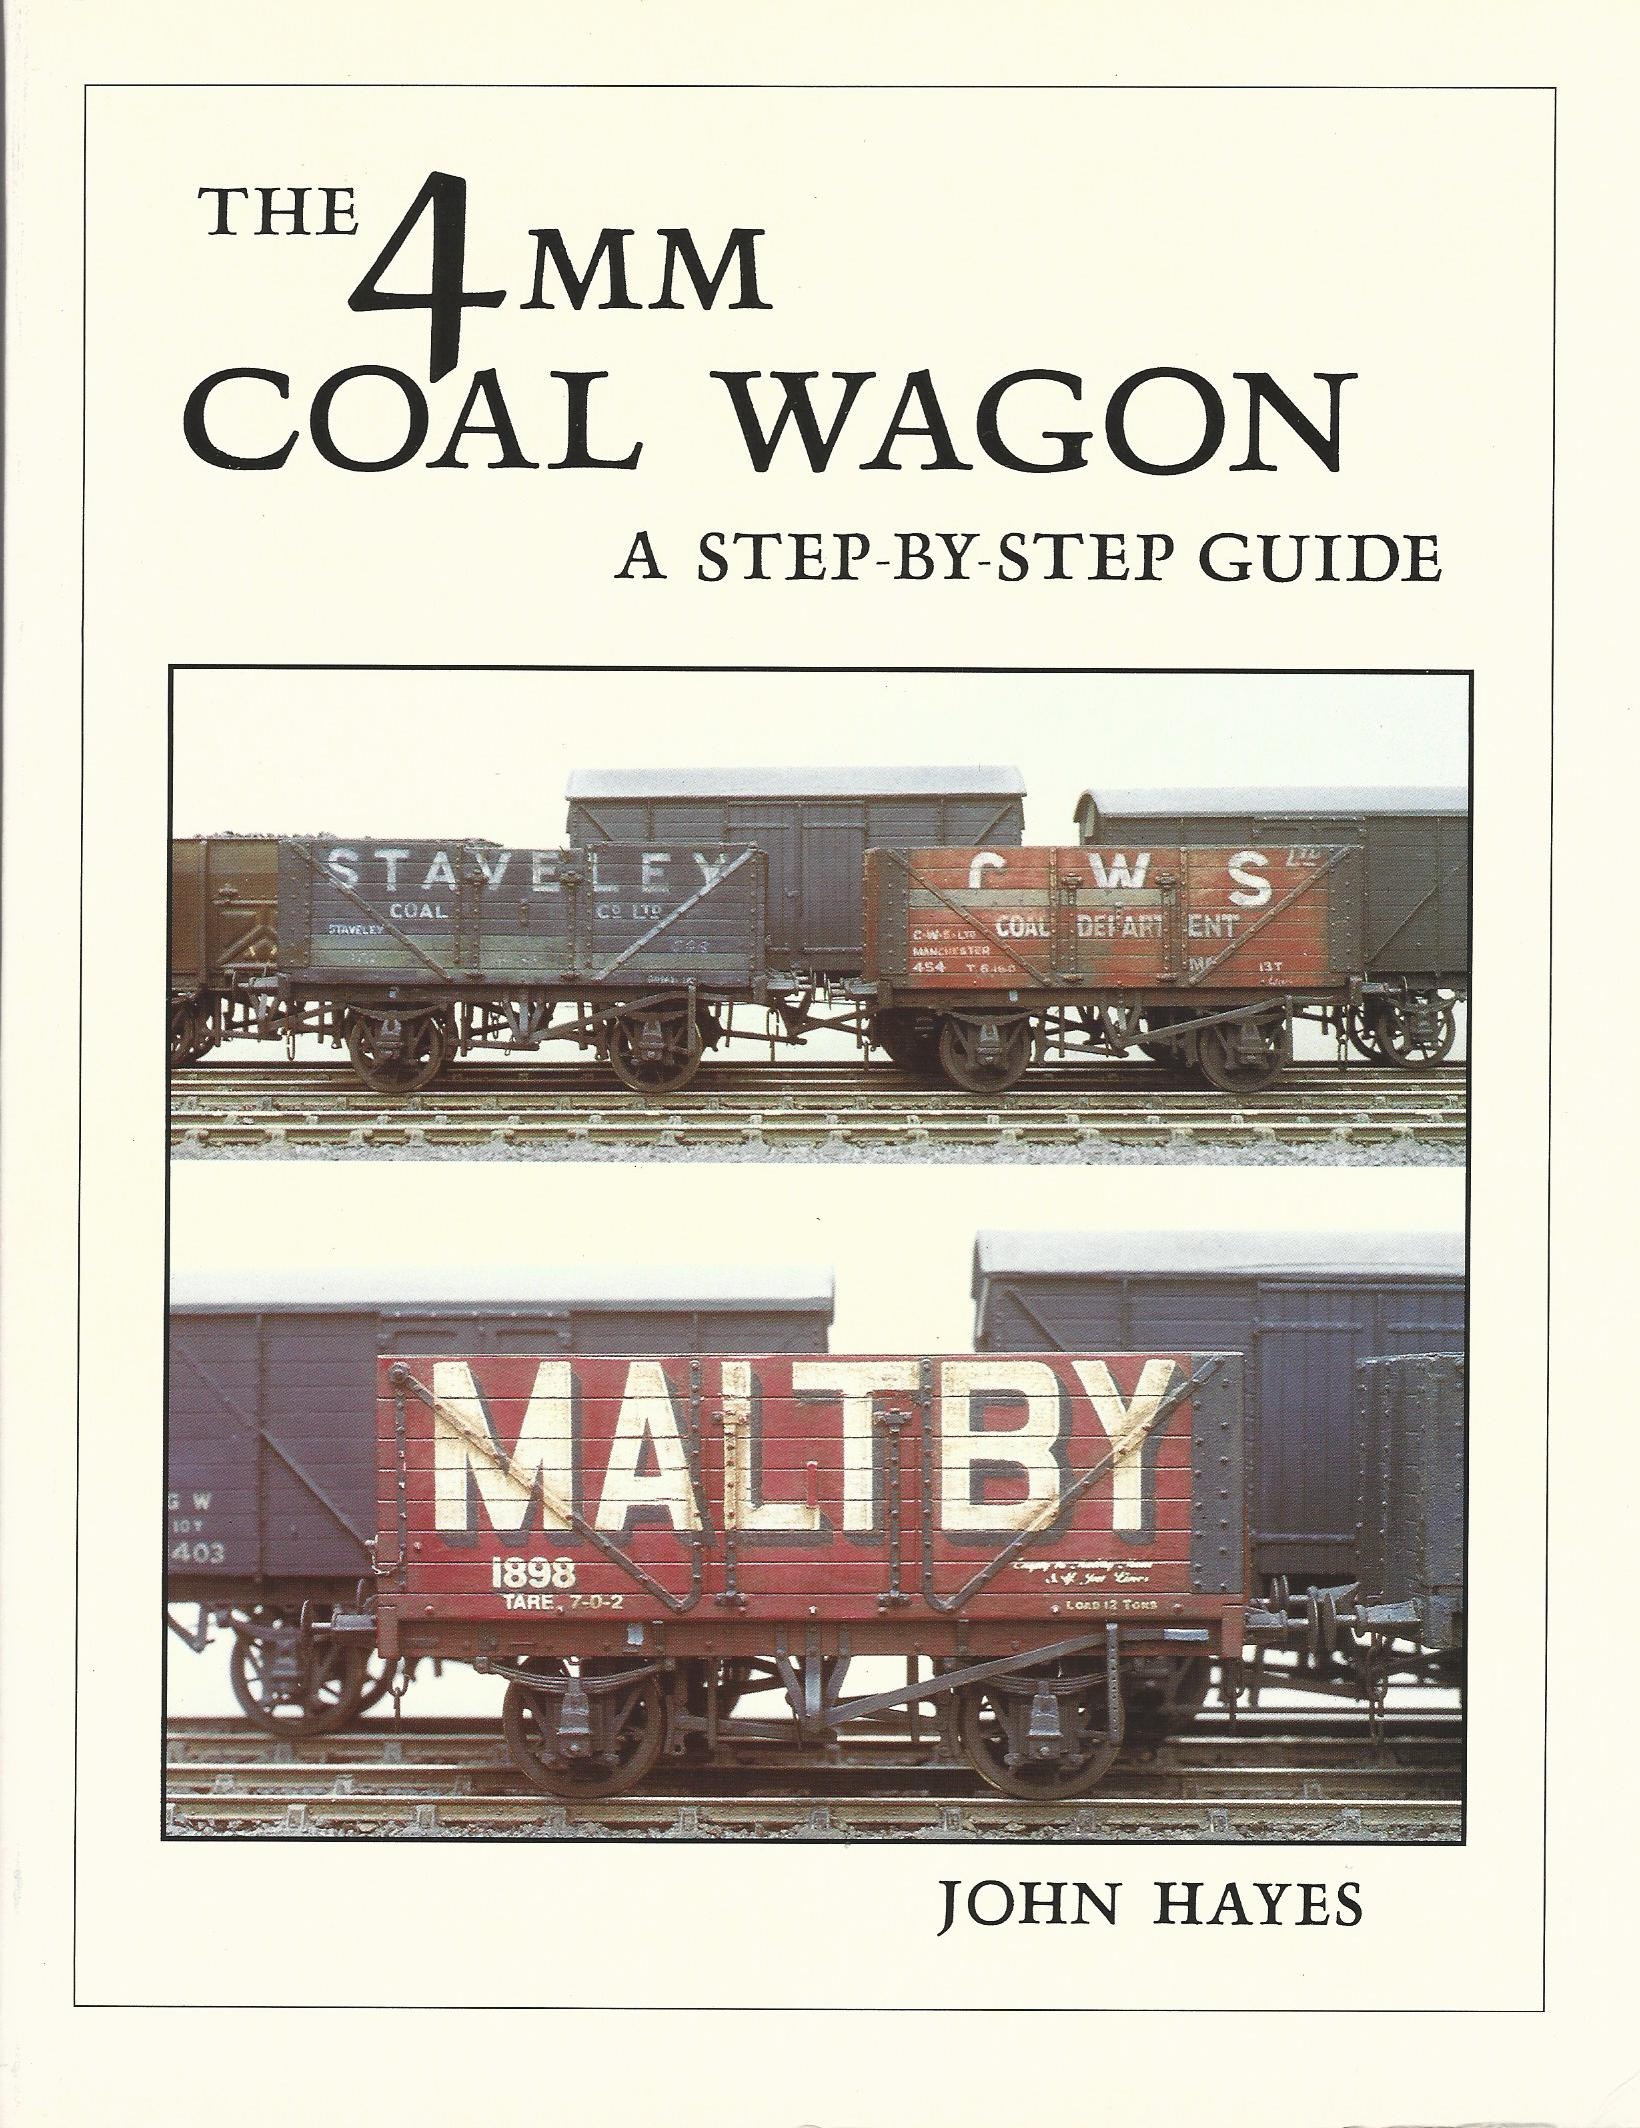 Image for The 4mm Coal Wagon, a Step-by-Step Guide